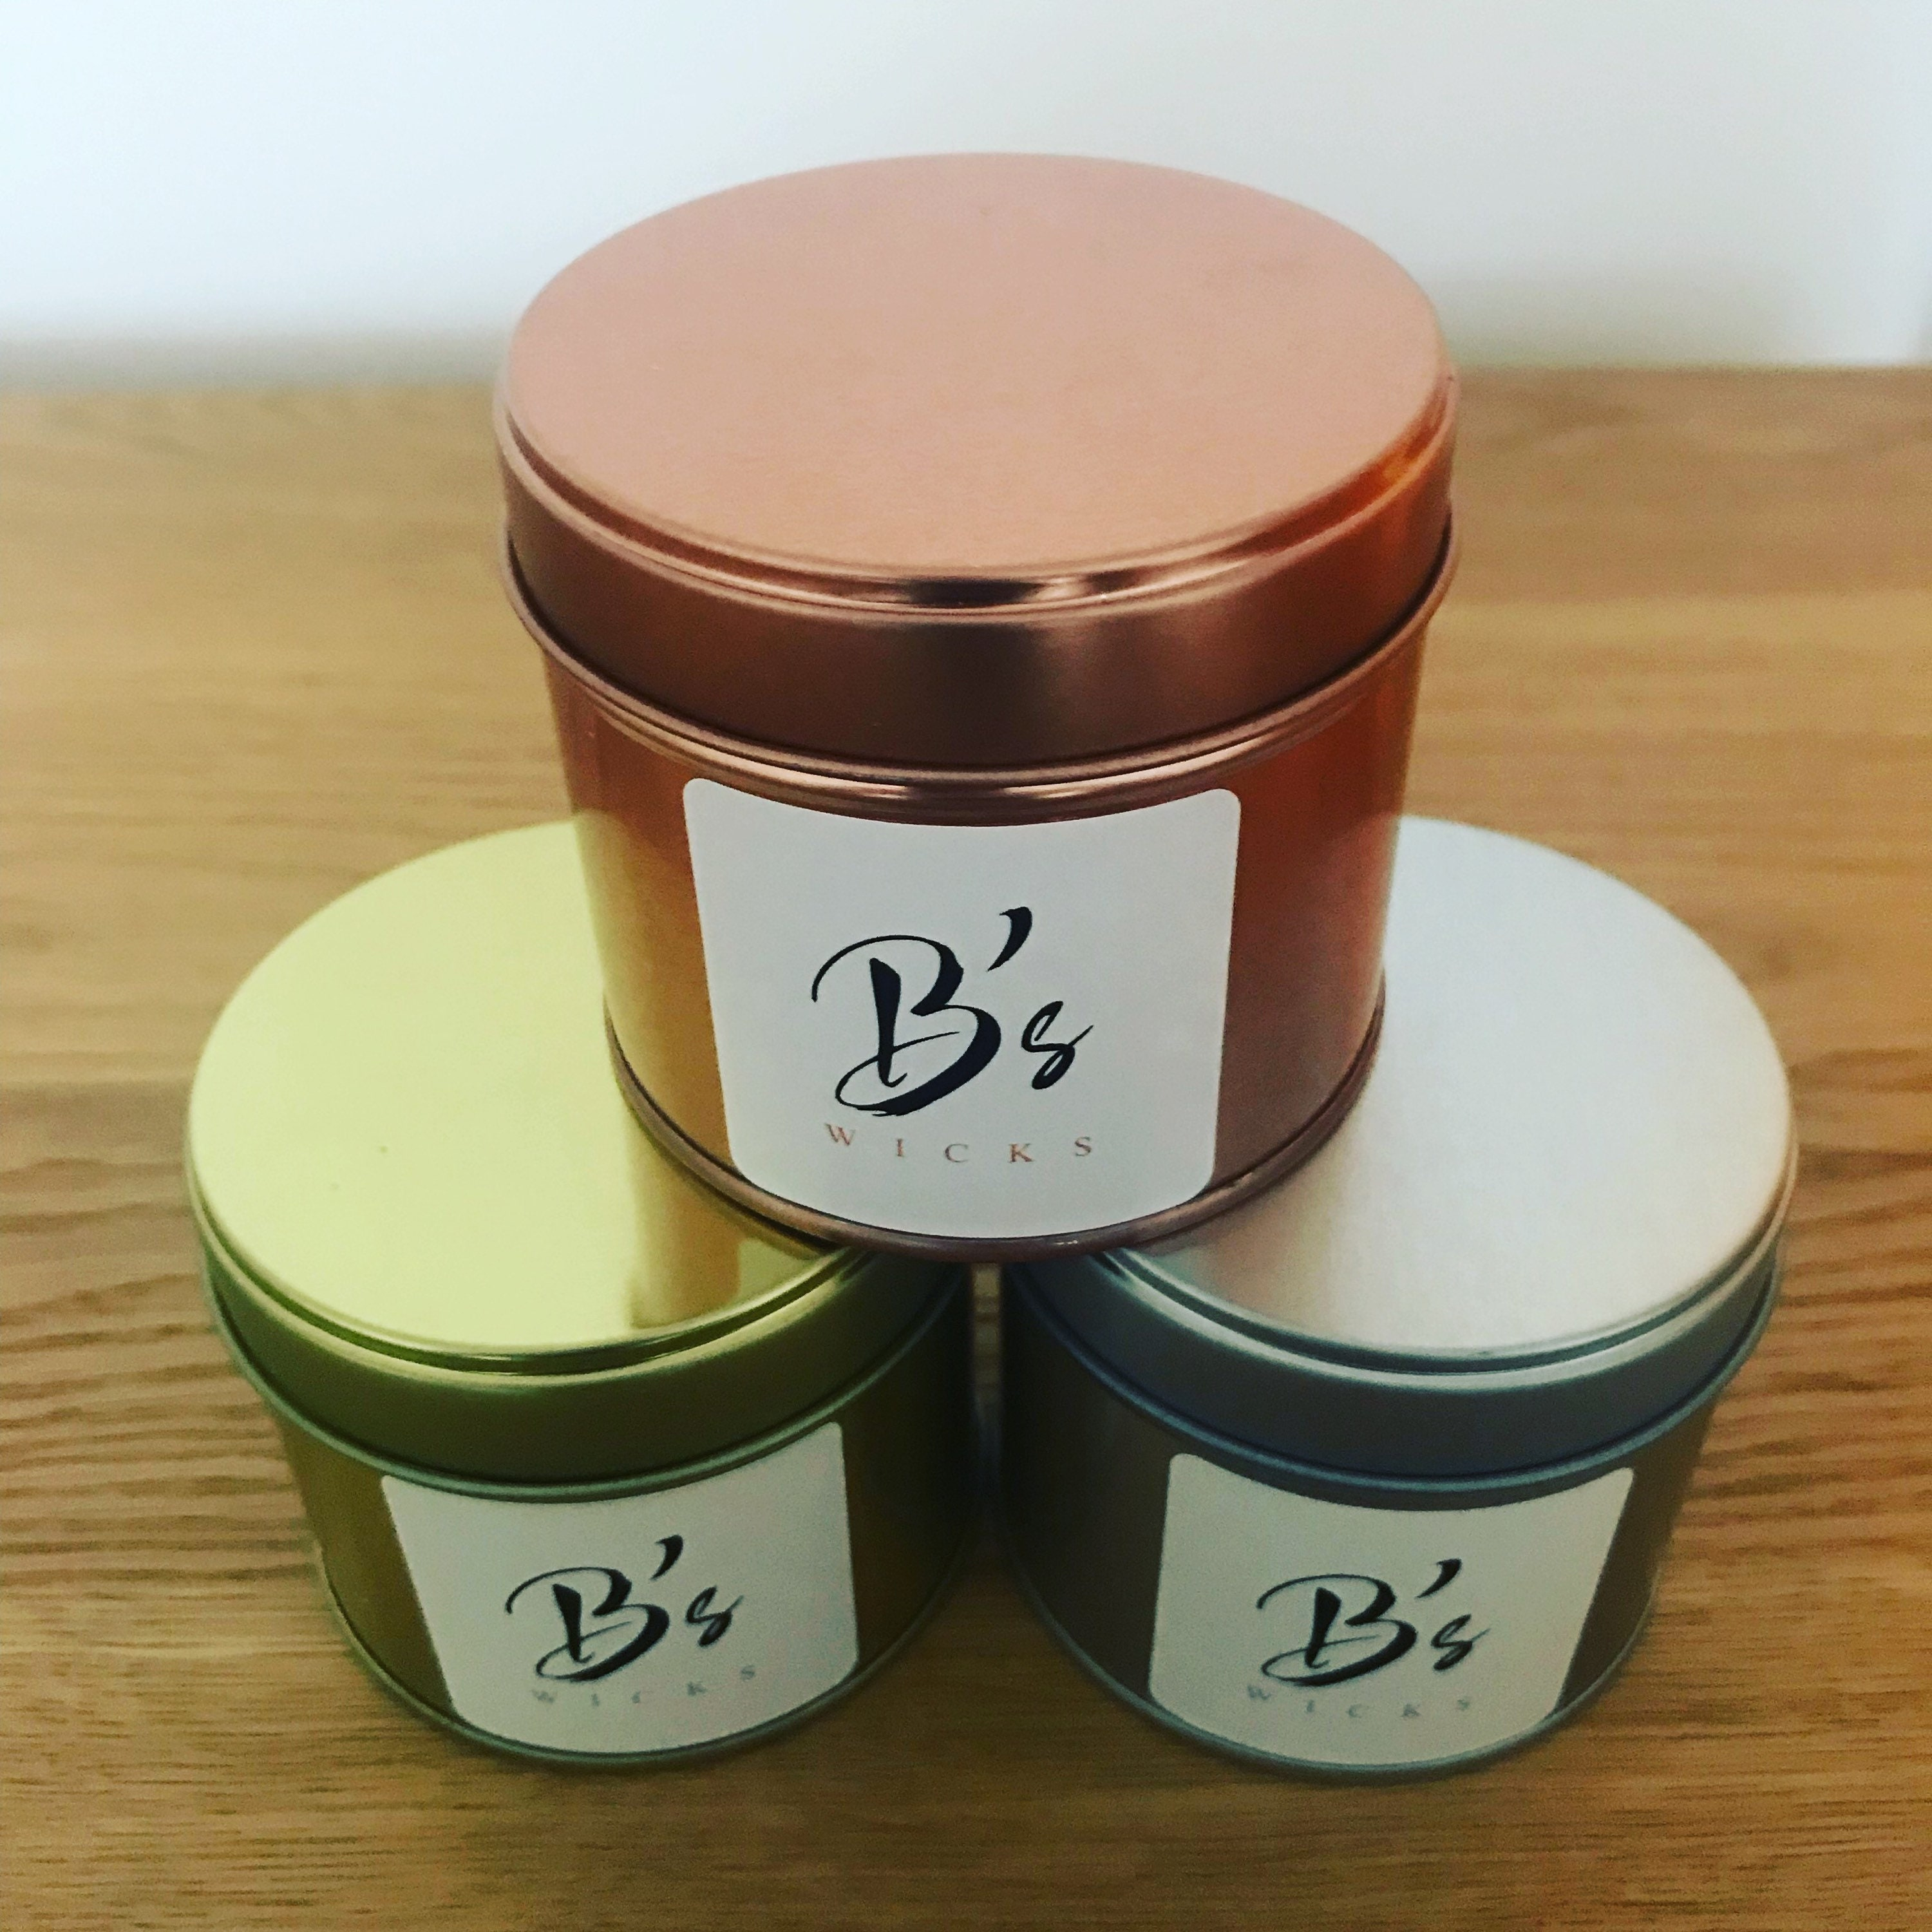 Homemade, Scented, Soy Candles with a choice of Copper, Gold